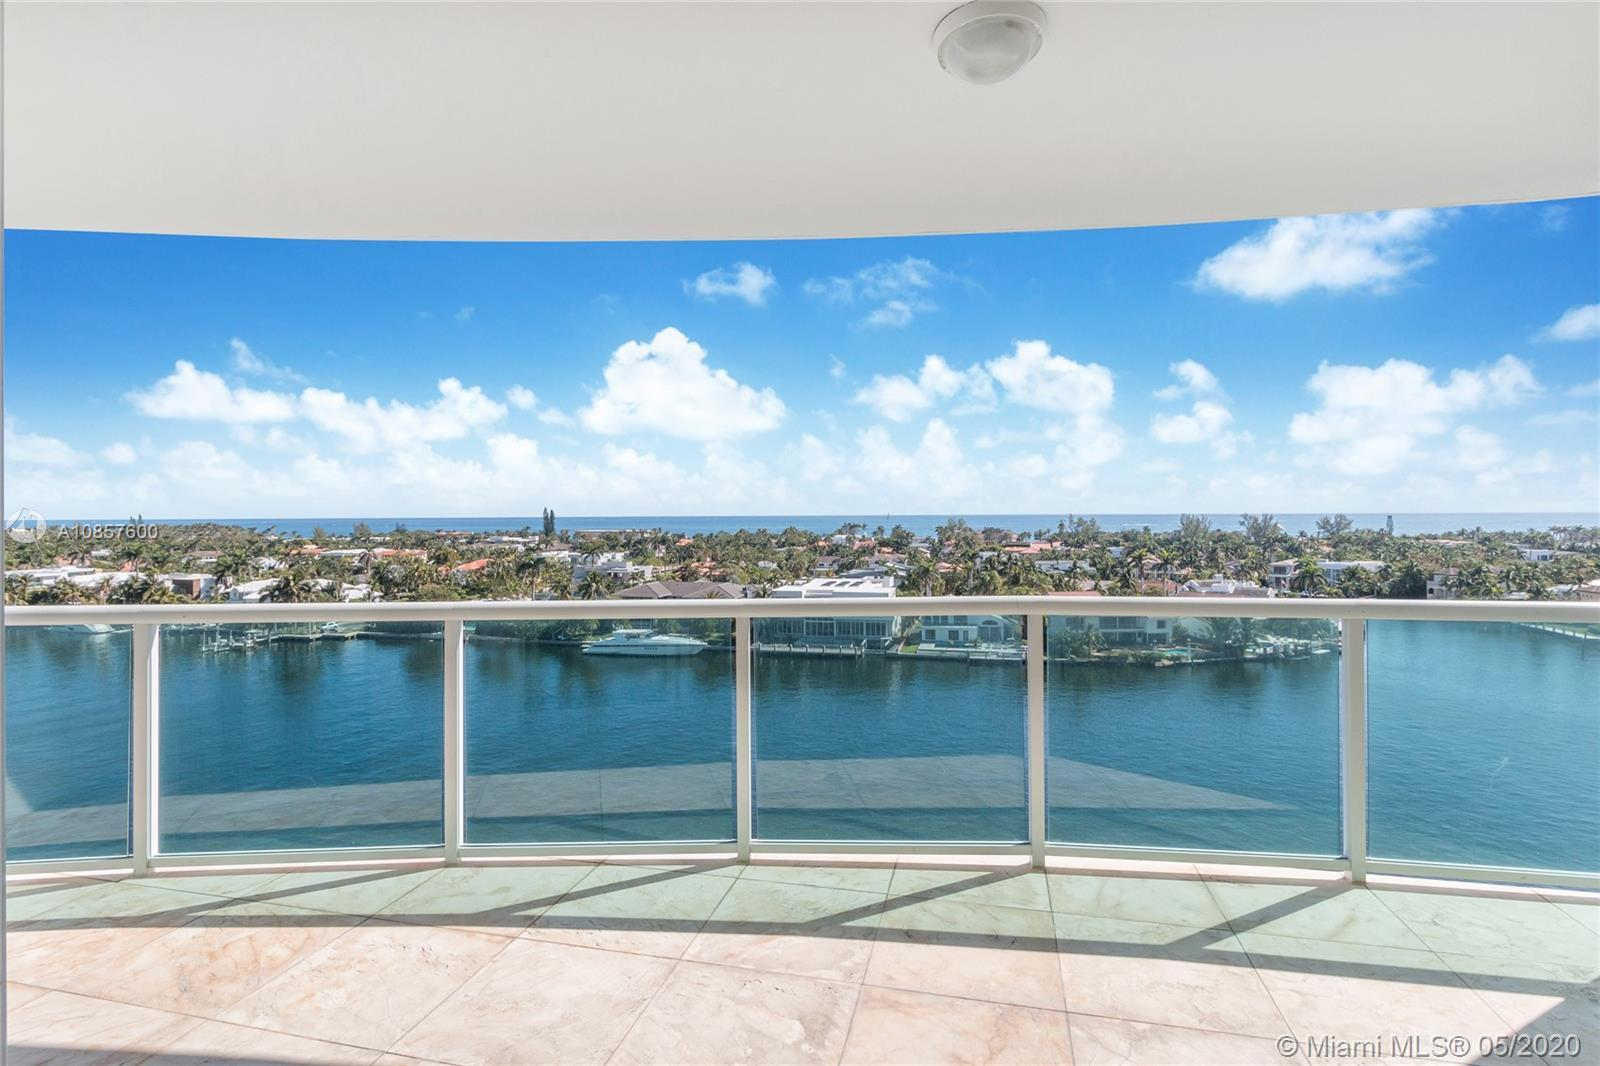 Great apartment at Hamptons South, Magnificent Ocean, Intracoastal and Golf Views, Over $400,000 in